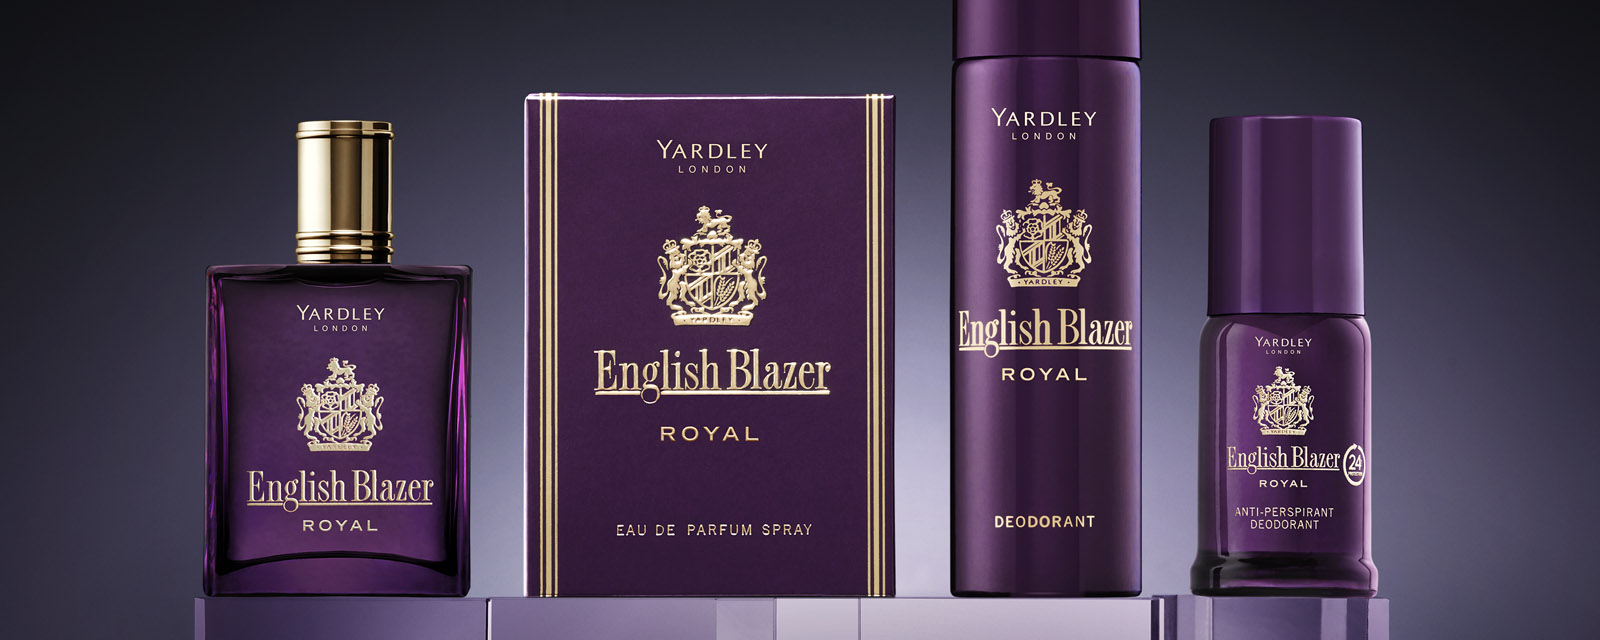 Yardley EB Royale